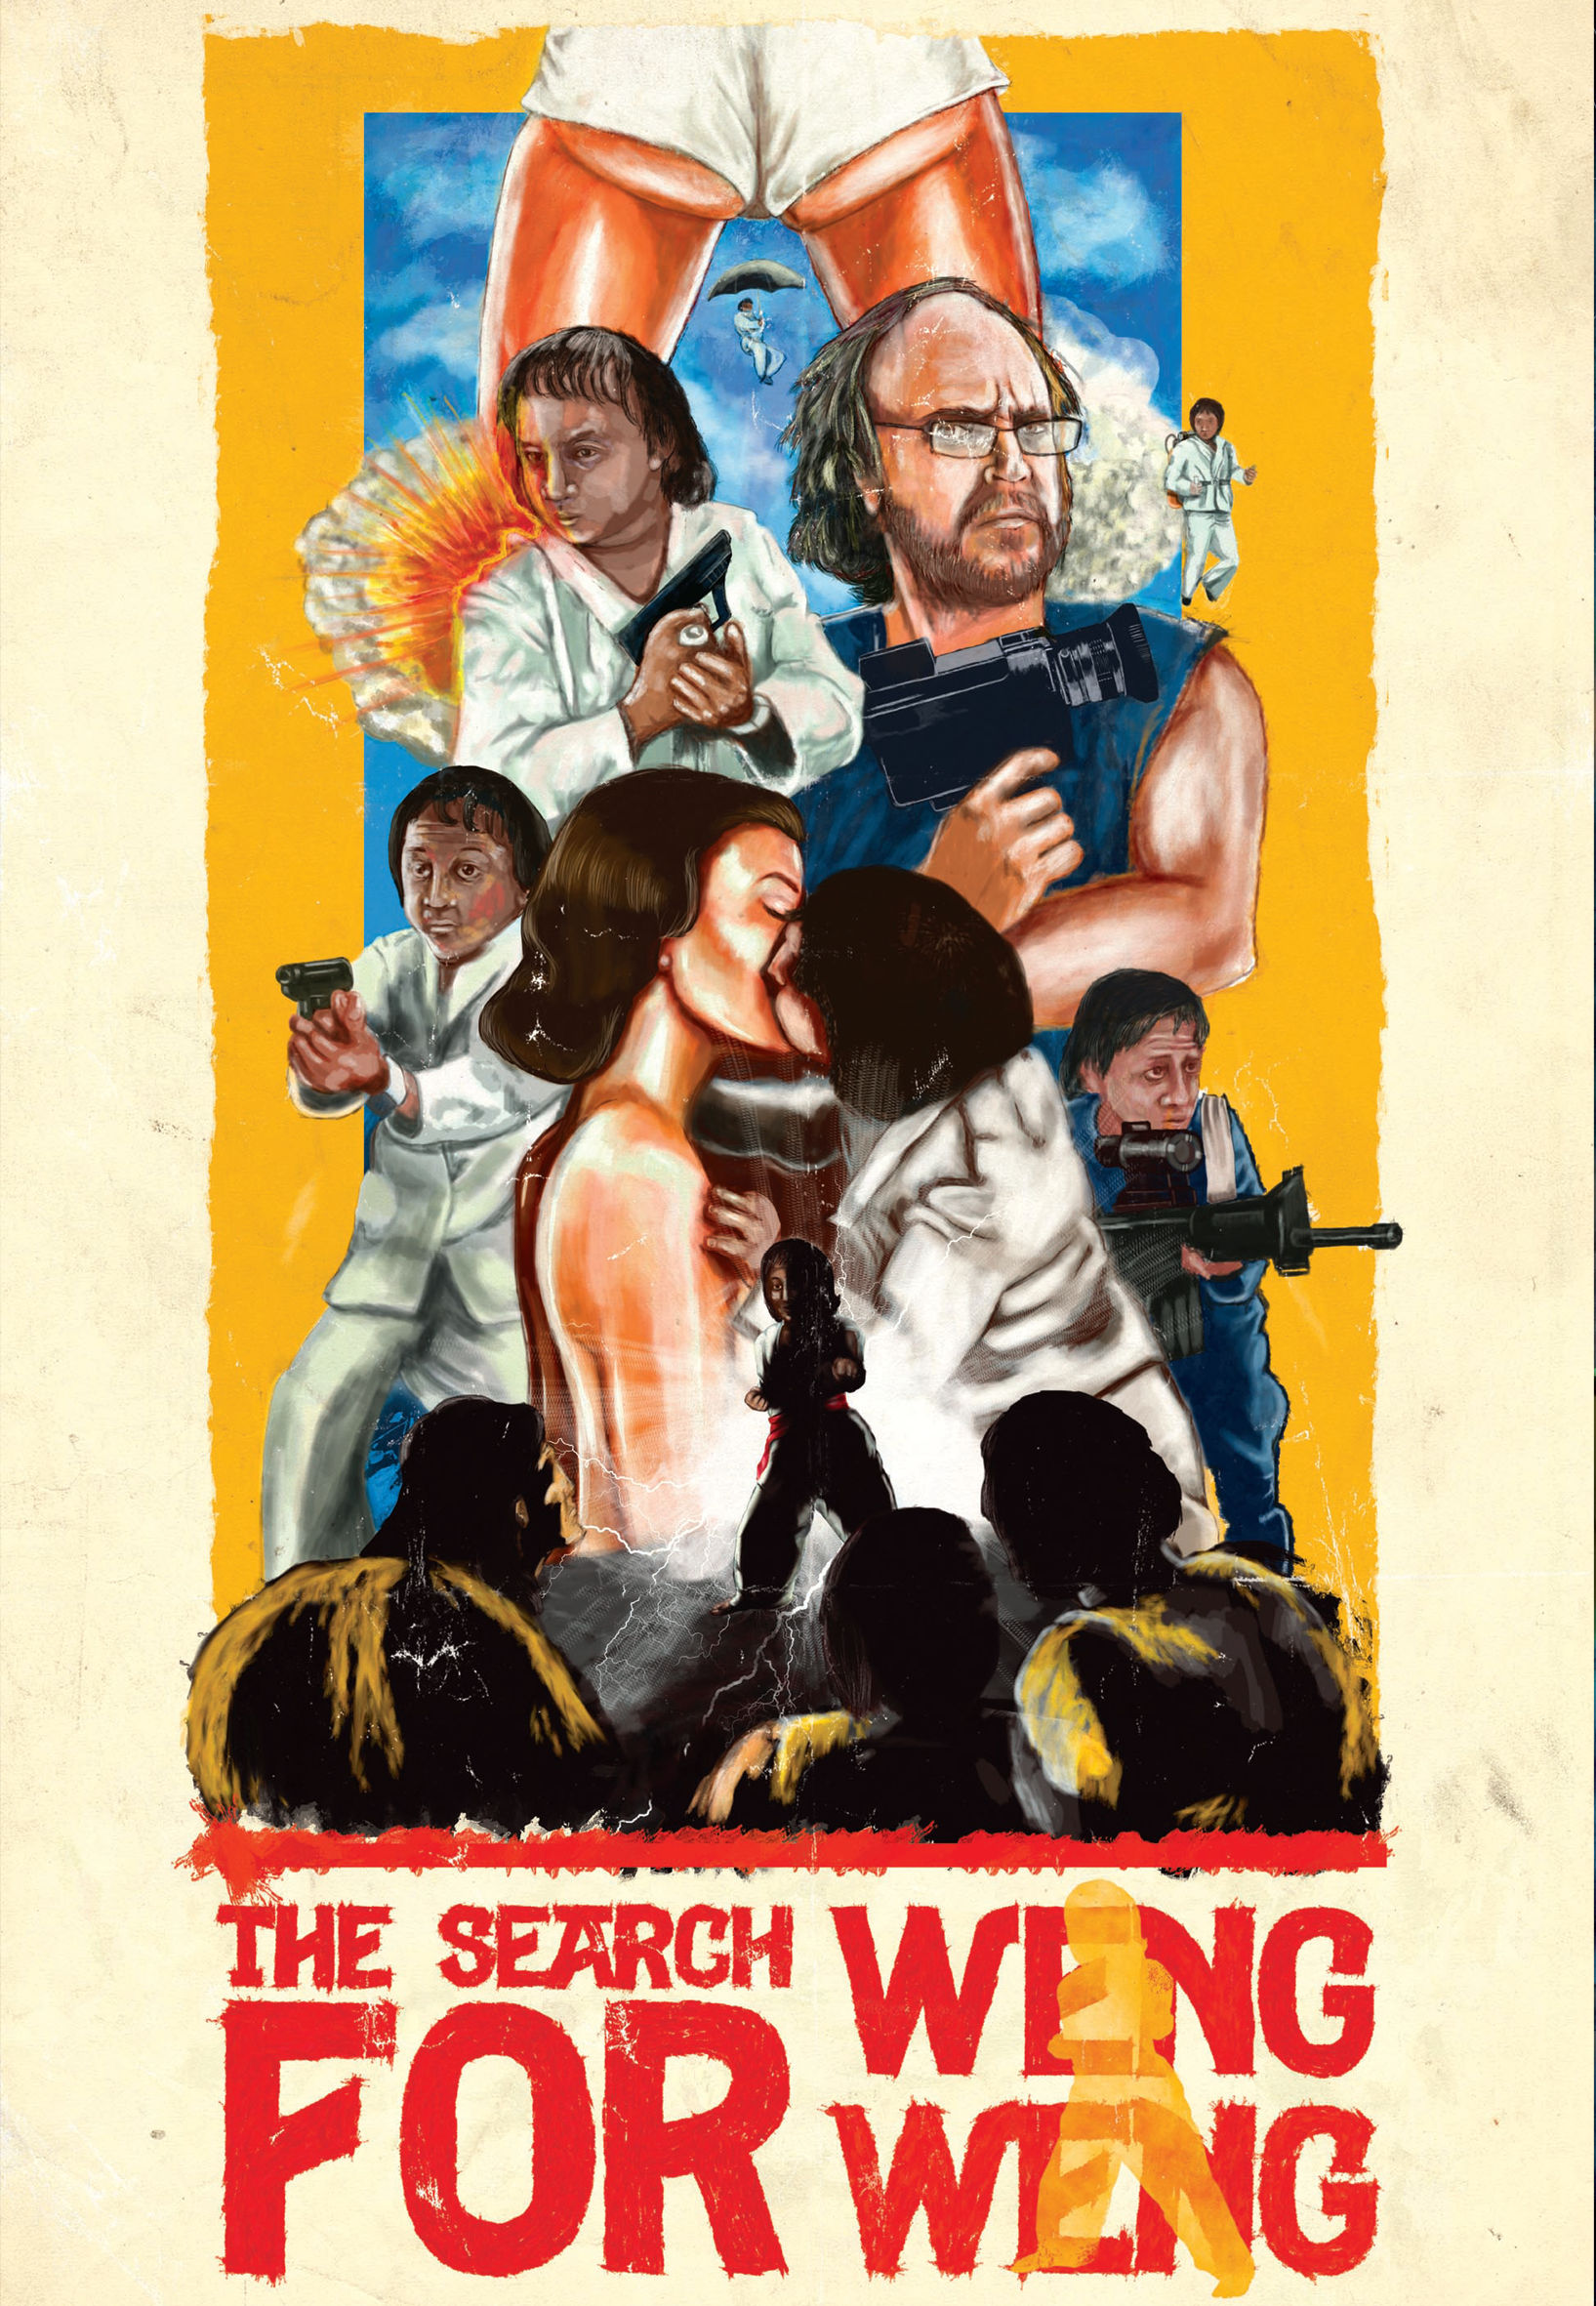 P THE SEARCH FOR WENG WENG